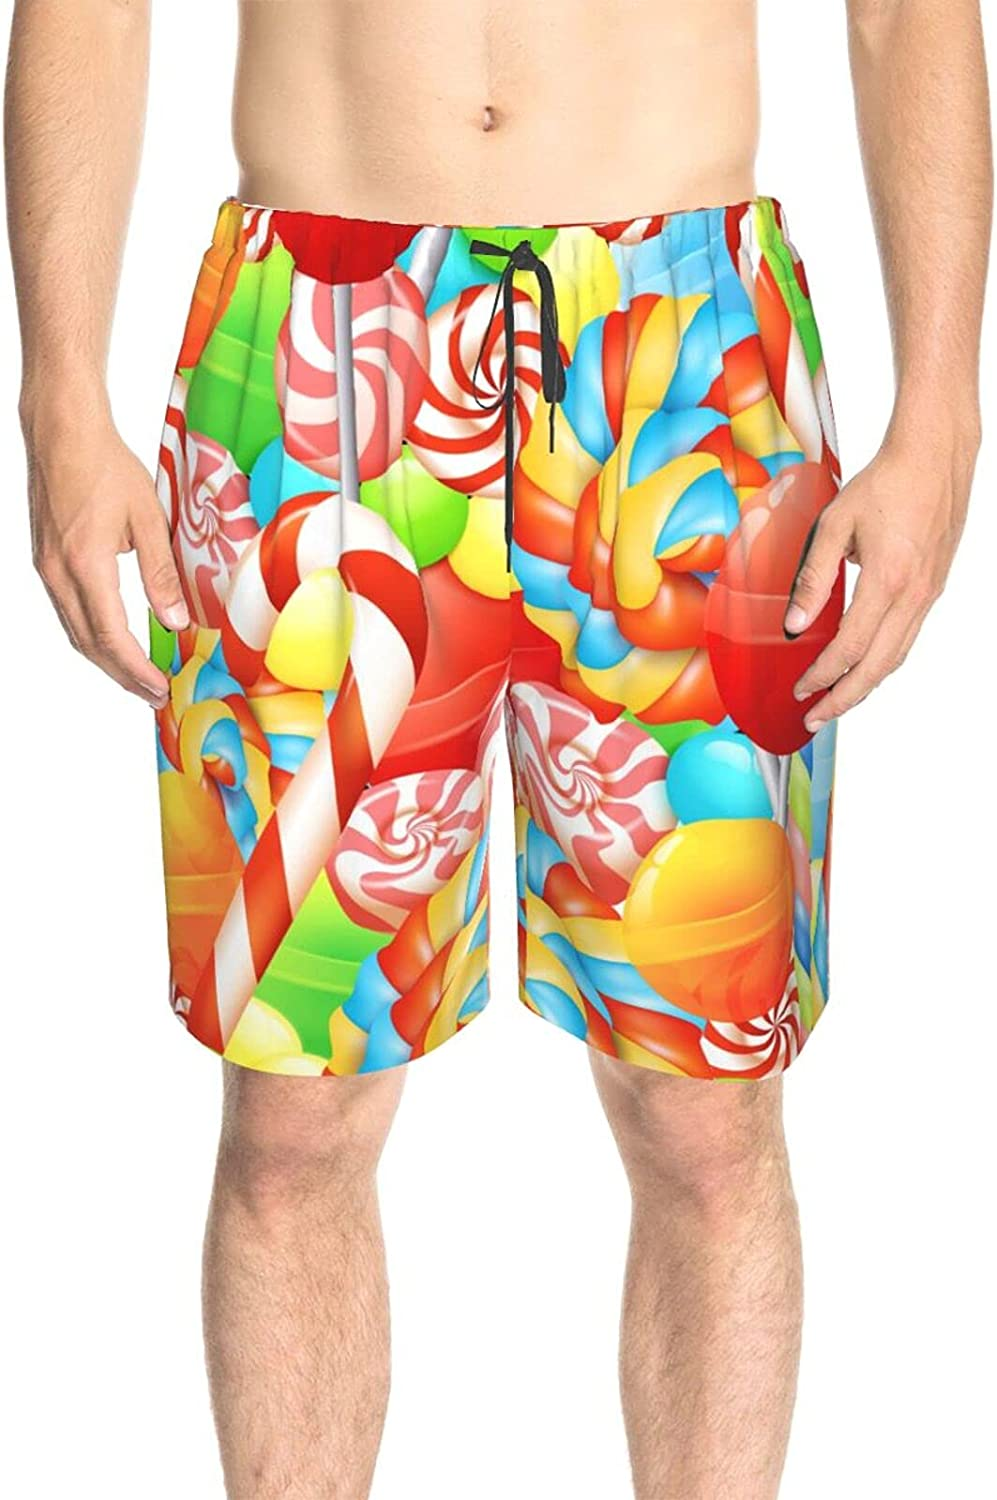 JINJUELS Men's Swim Shorts Colorful Sweet Candy Swim Board Shorts Quick Dry Comfy Athletic Beach Short with Liner